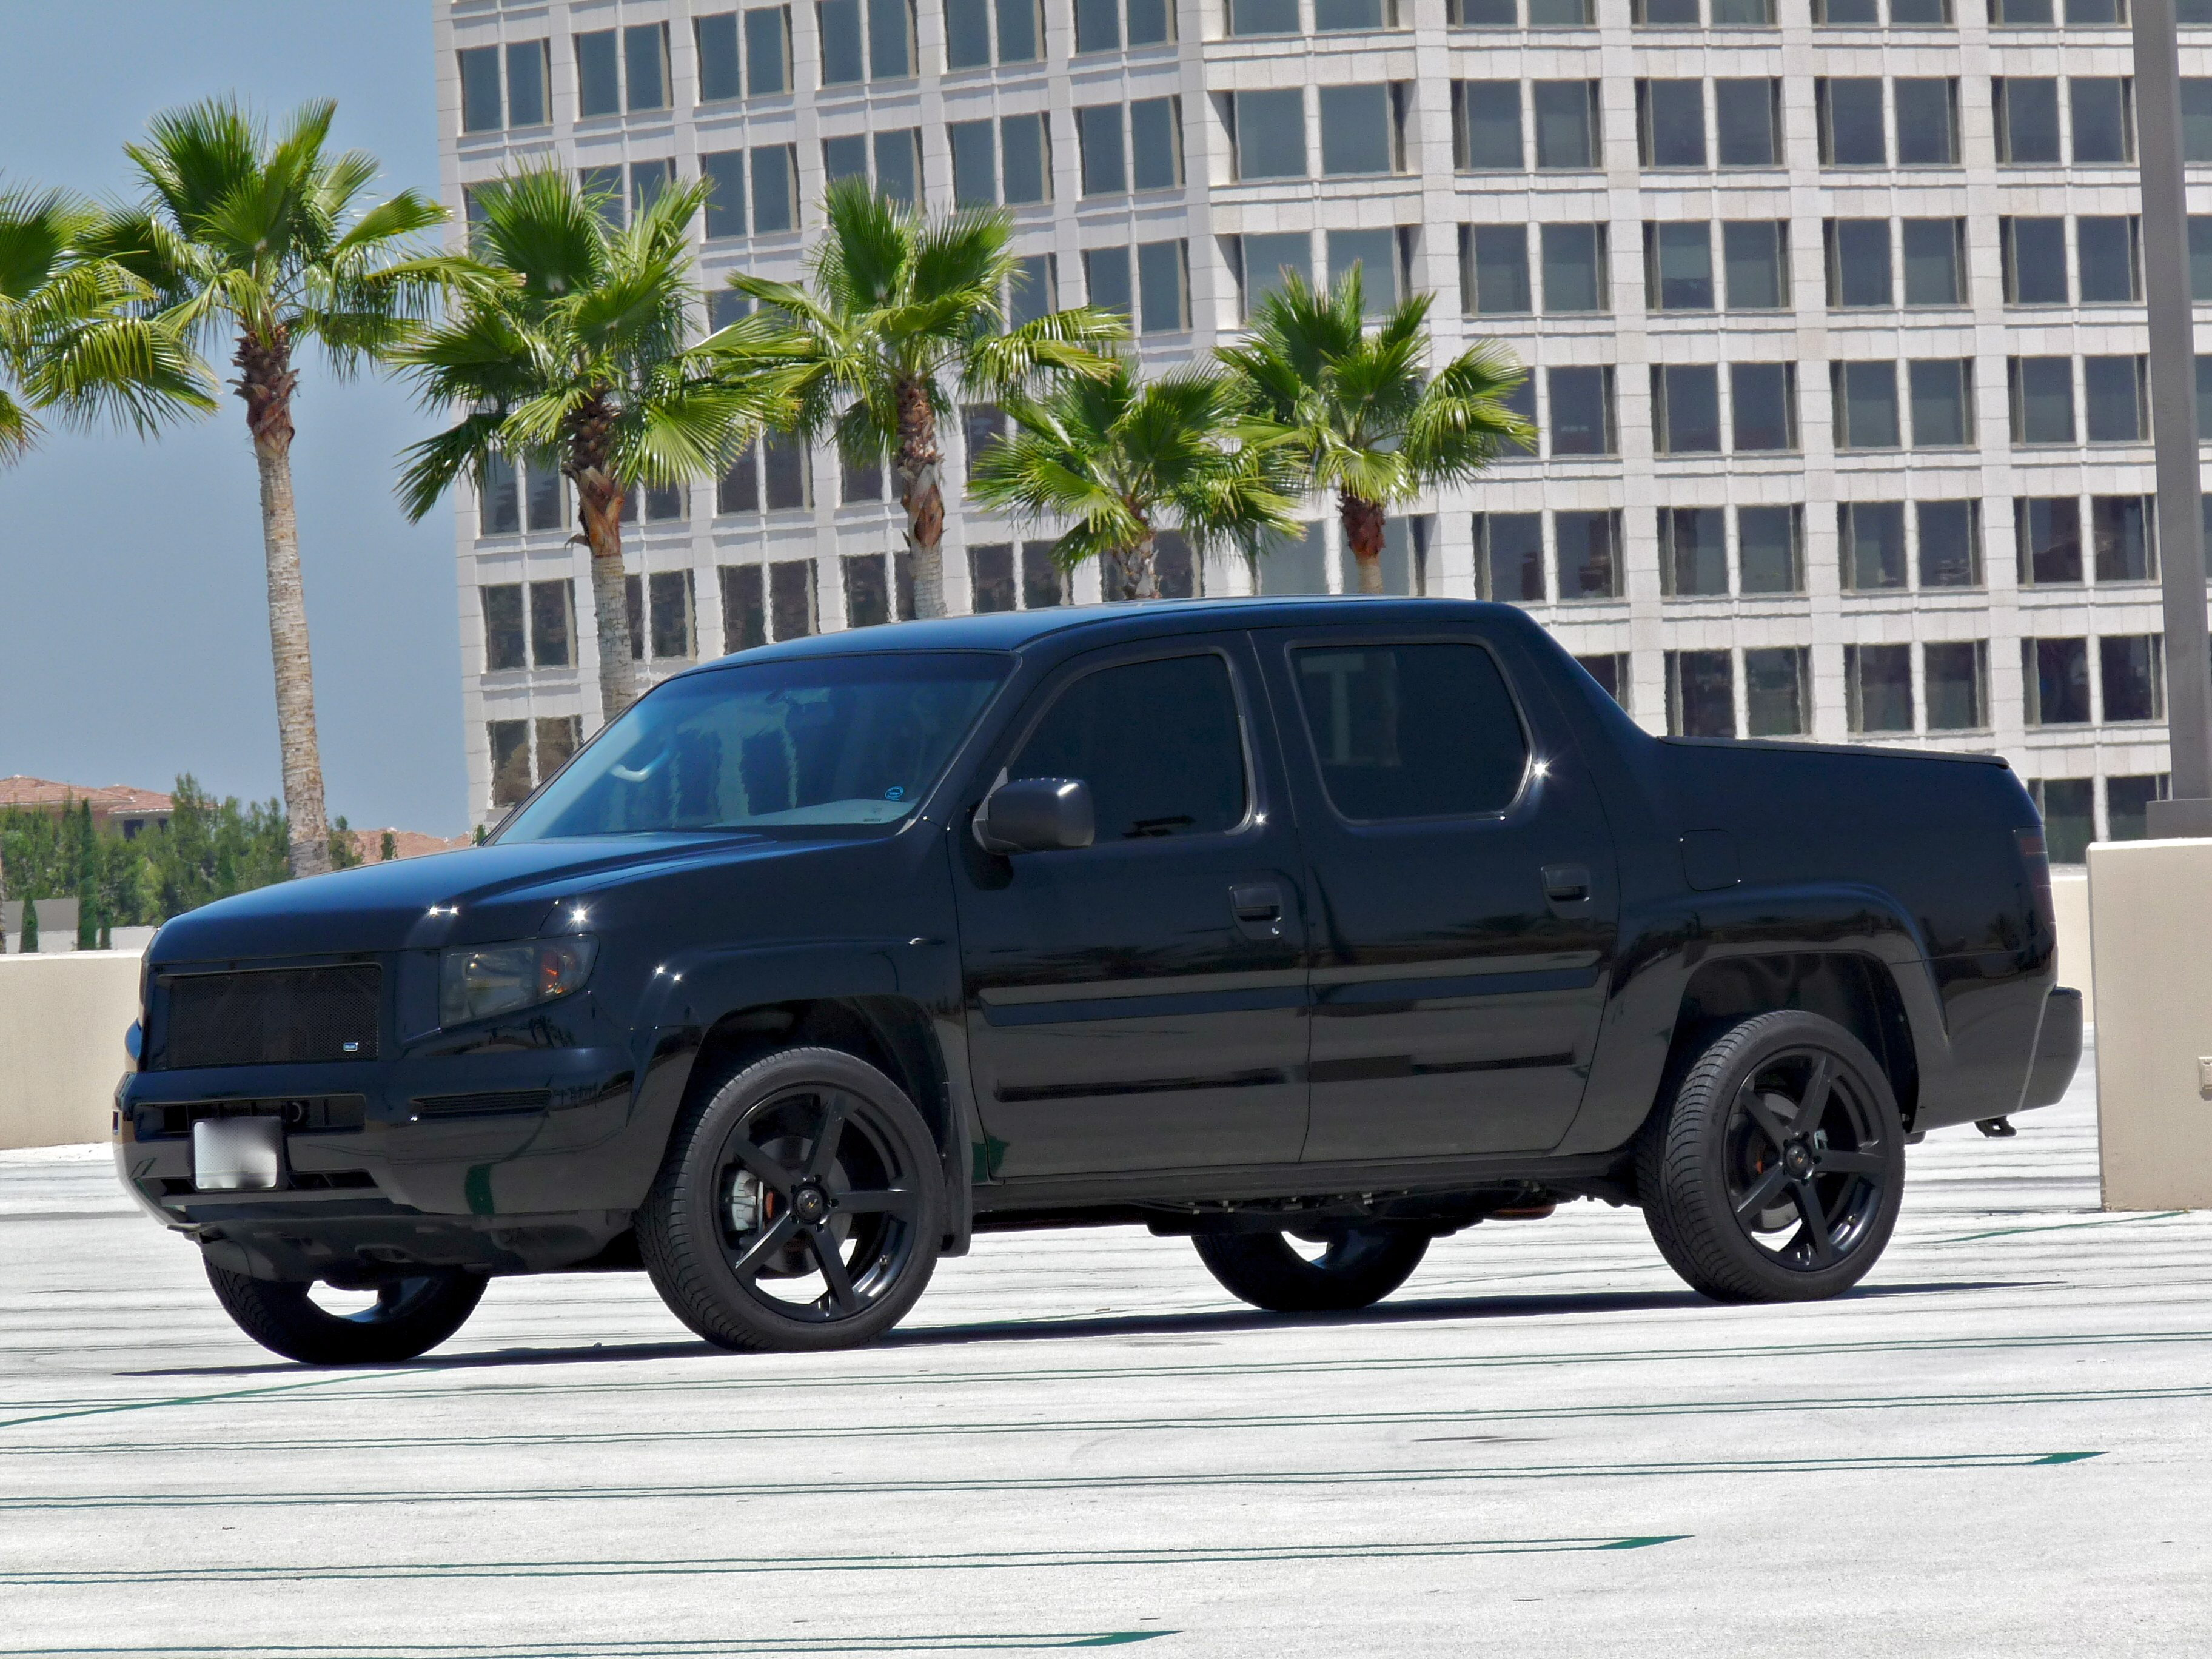 rapids ridgeline n us wheels mi steps projectimagedetail honda motorsports window readylift blacked grand out side venom